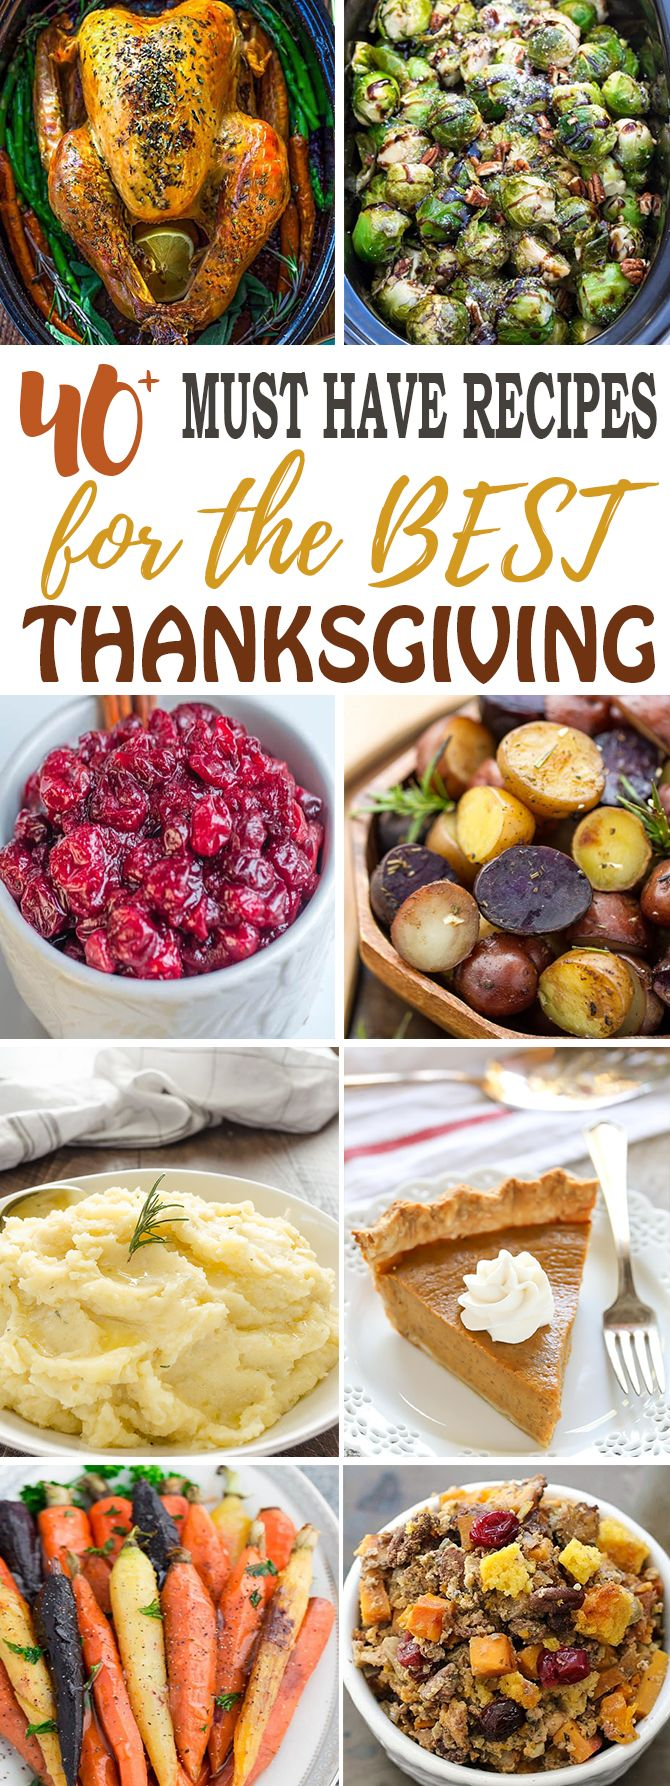 Over 40 must have recipes for the BEST Thanksgiving feast. Everything from appetizers, breakfast for overnight guest, side dishes (mashed potatoes, brussels sprouts, sweet potato casserole, cornbread, stuffing, dressing, salad), dessert (pumpkin pie) and of course the juiciest turkey ever. Perfect for planning ahead with slow cooker and instant pot options. Everything you need to host a stress-free meal. #pumpkin #pie #turkey #thanksgiving #mealplan #sidedish #best #recipes